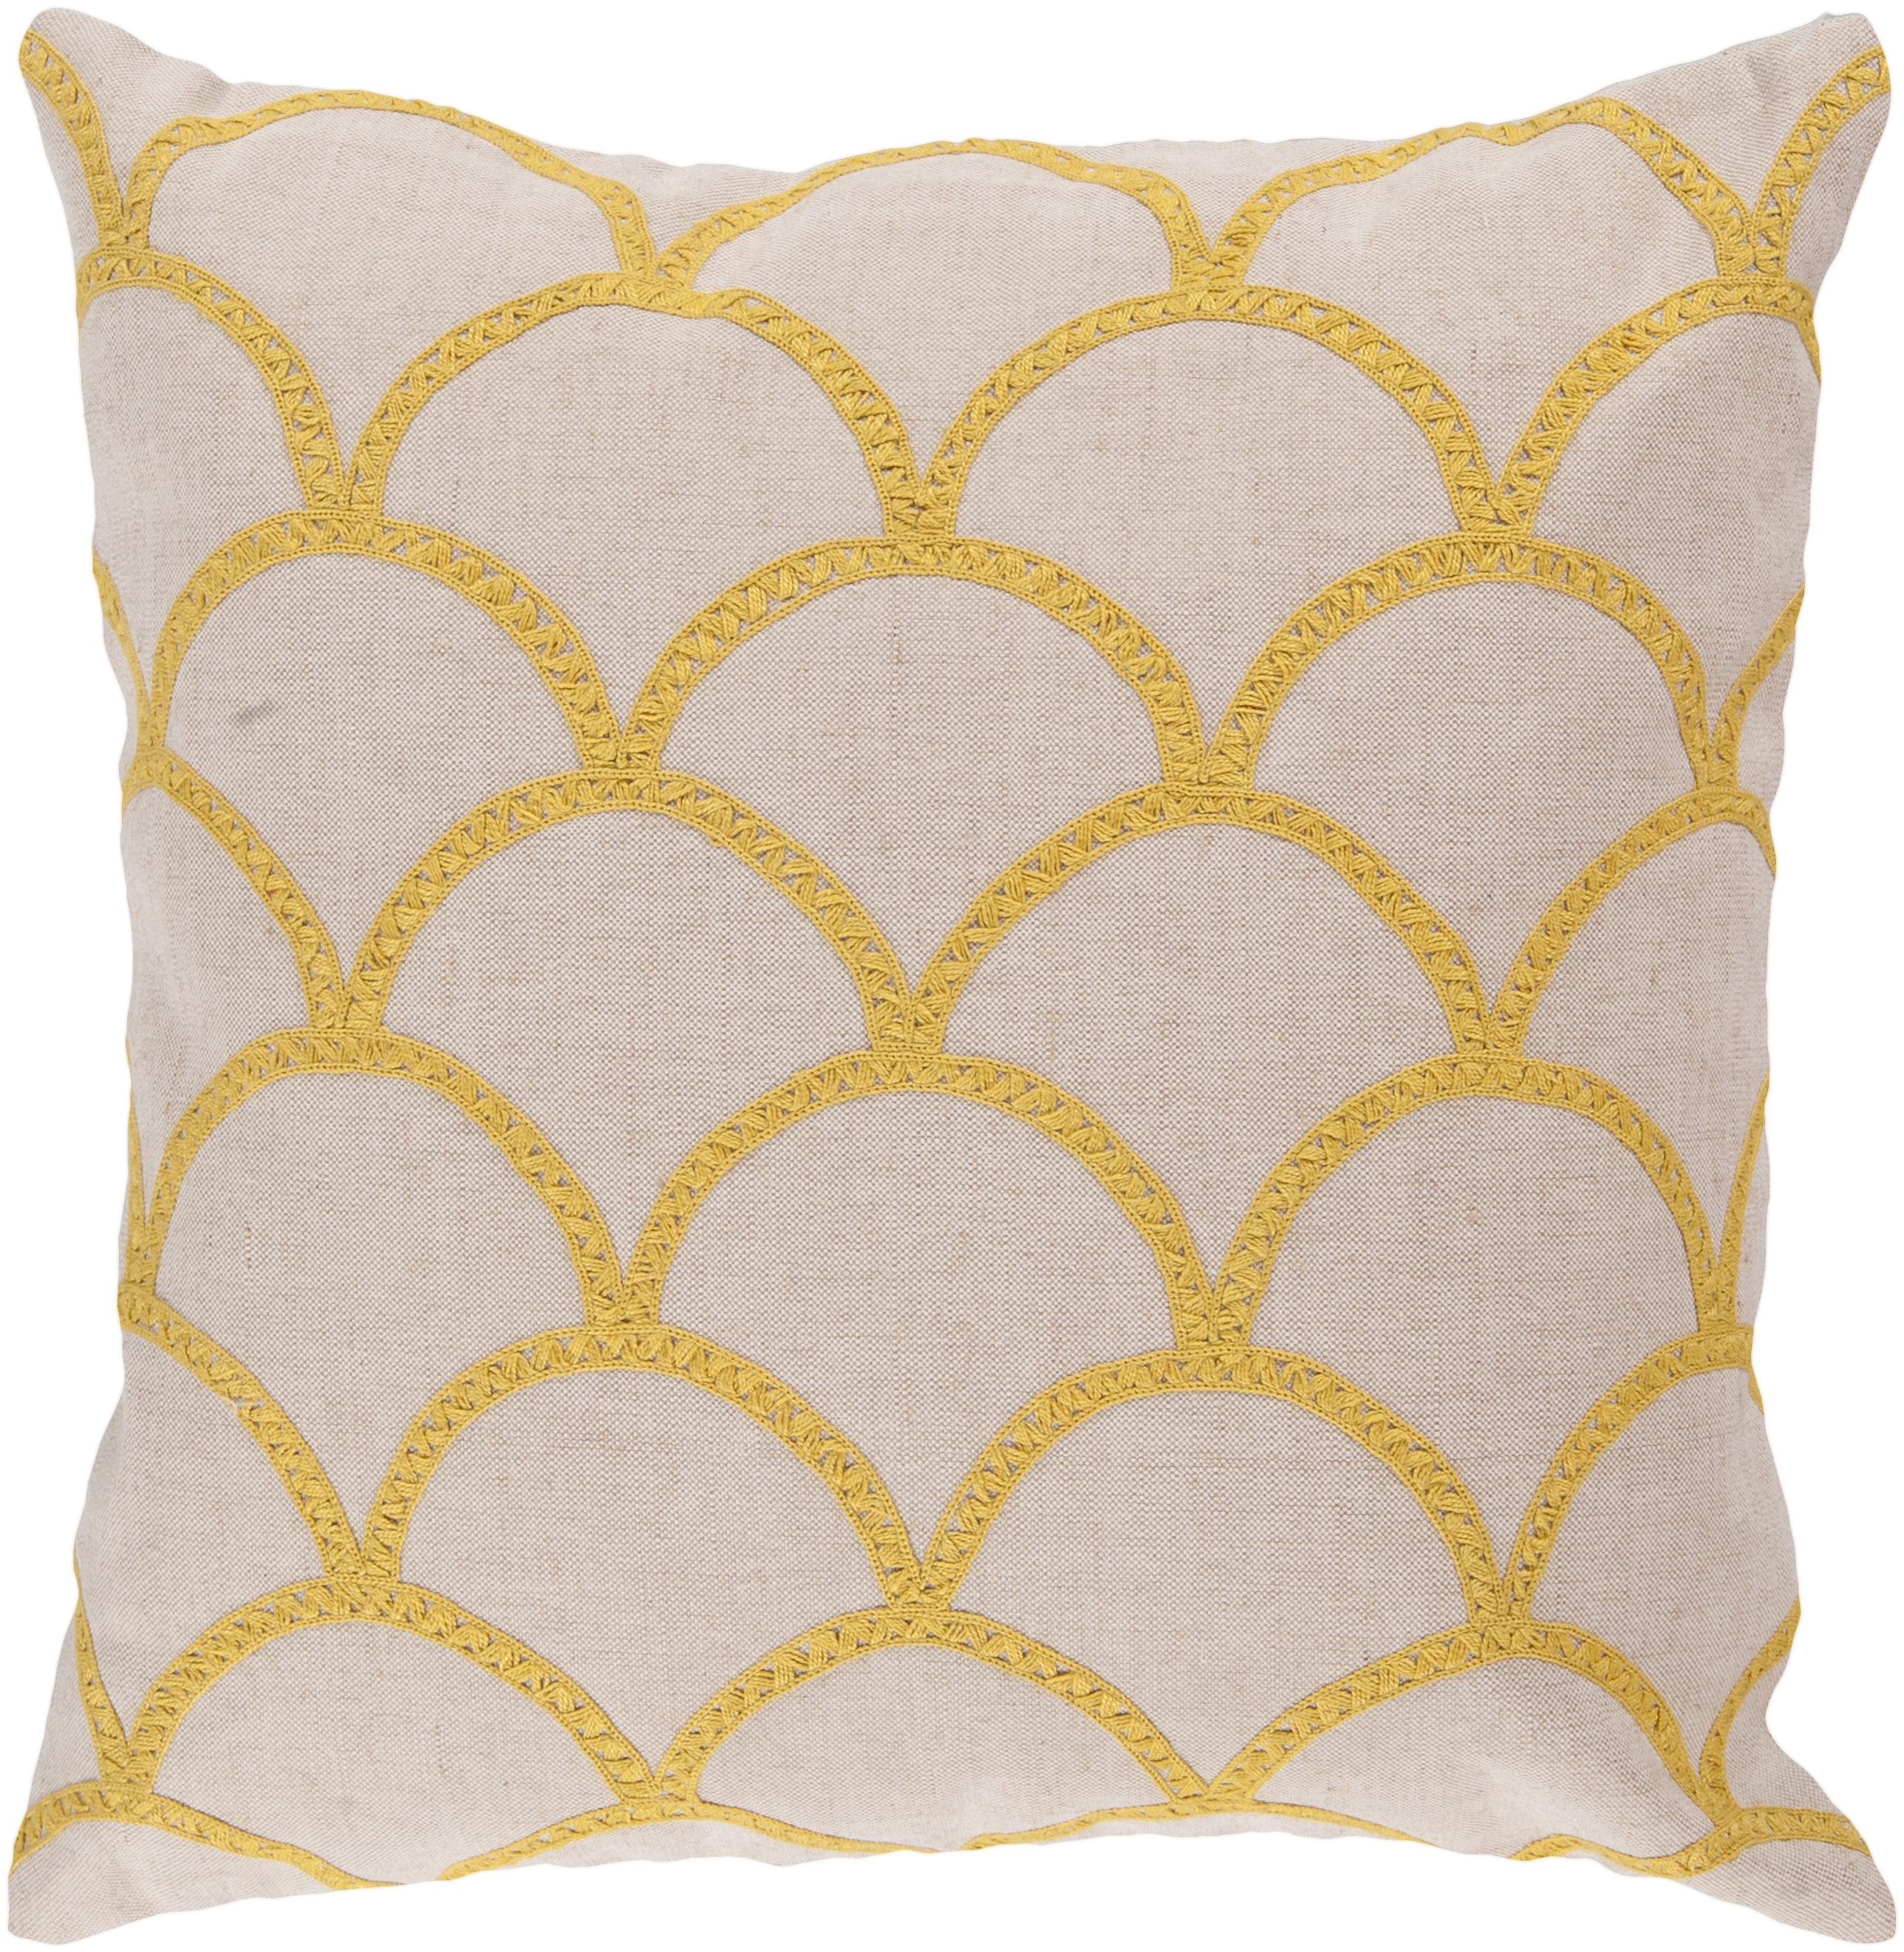 "Surya Pillows 22"" x 22"" Pillow - Item Number: COM010-2222P"